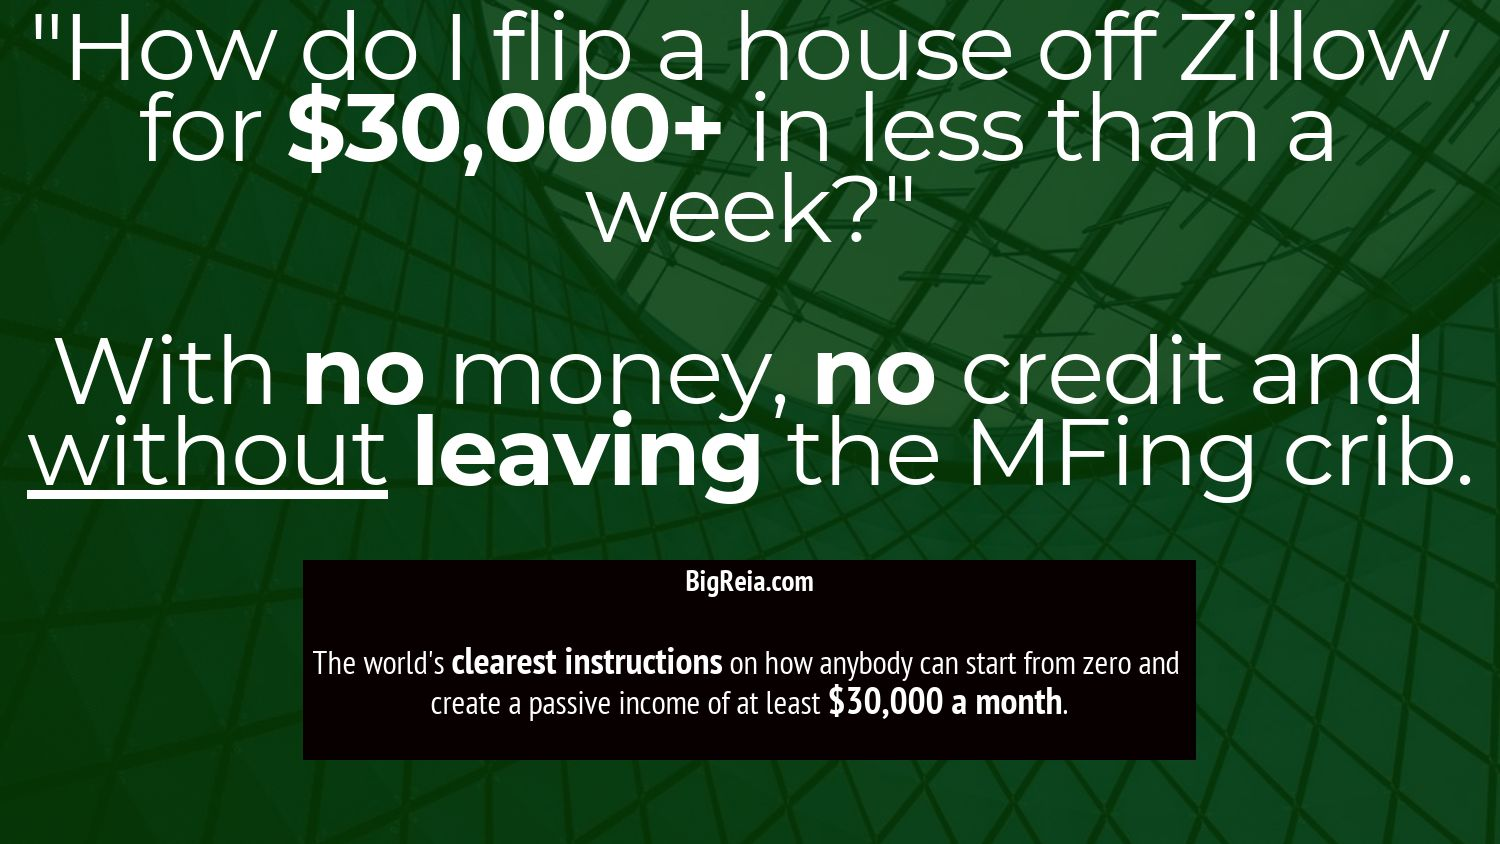 How to flip houses off Zillow for 30k